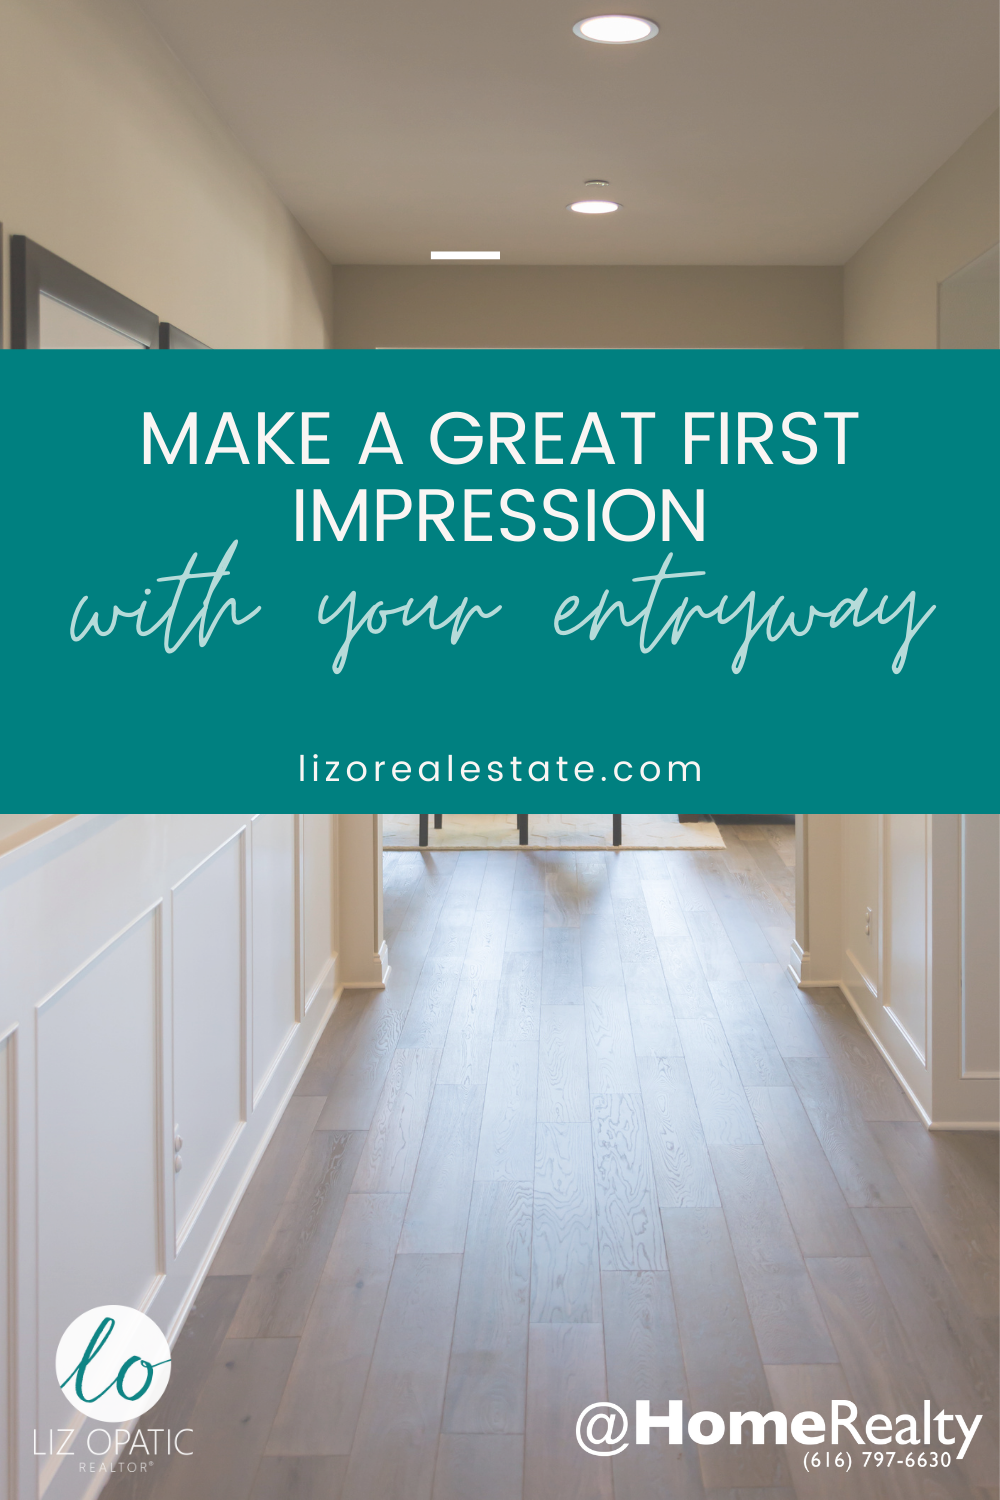 Tips to make your entryway inviting. #homeownership #westmichiganrealtor #westmichigan #grandrapidsmi #grandrapidsmichigan #realestate #homedecor